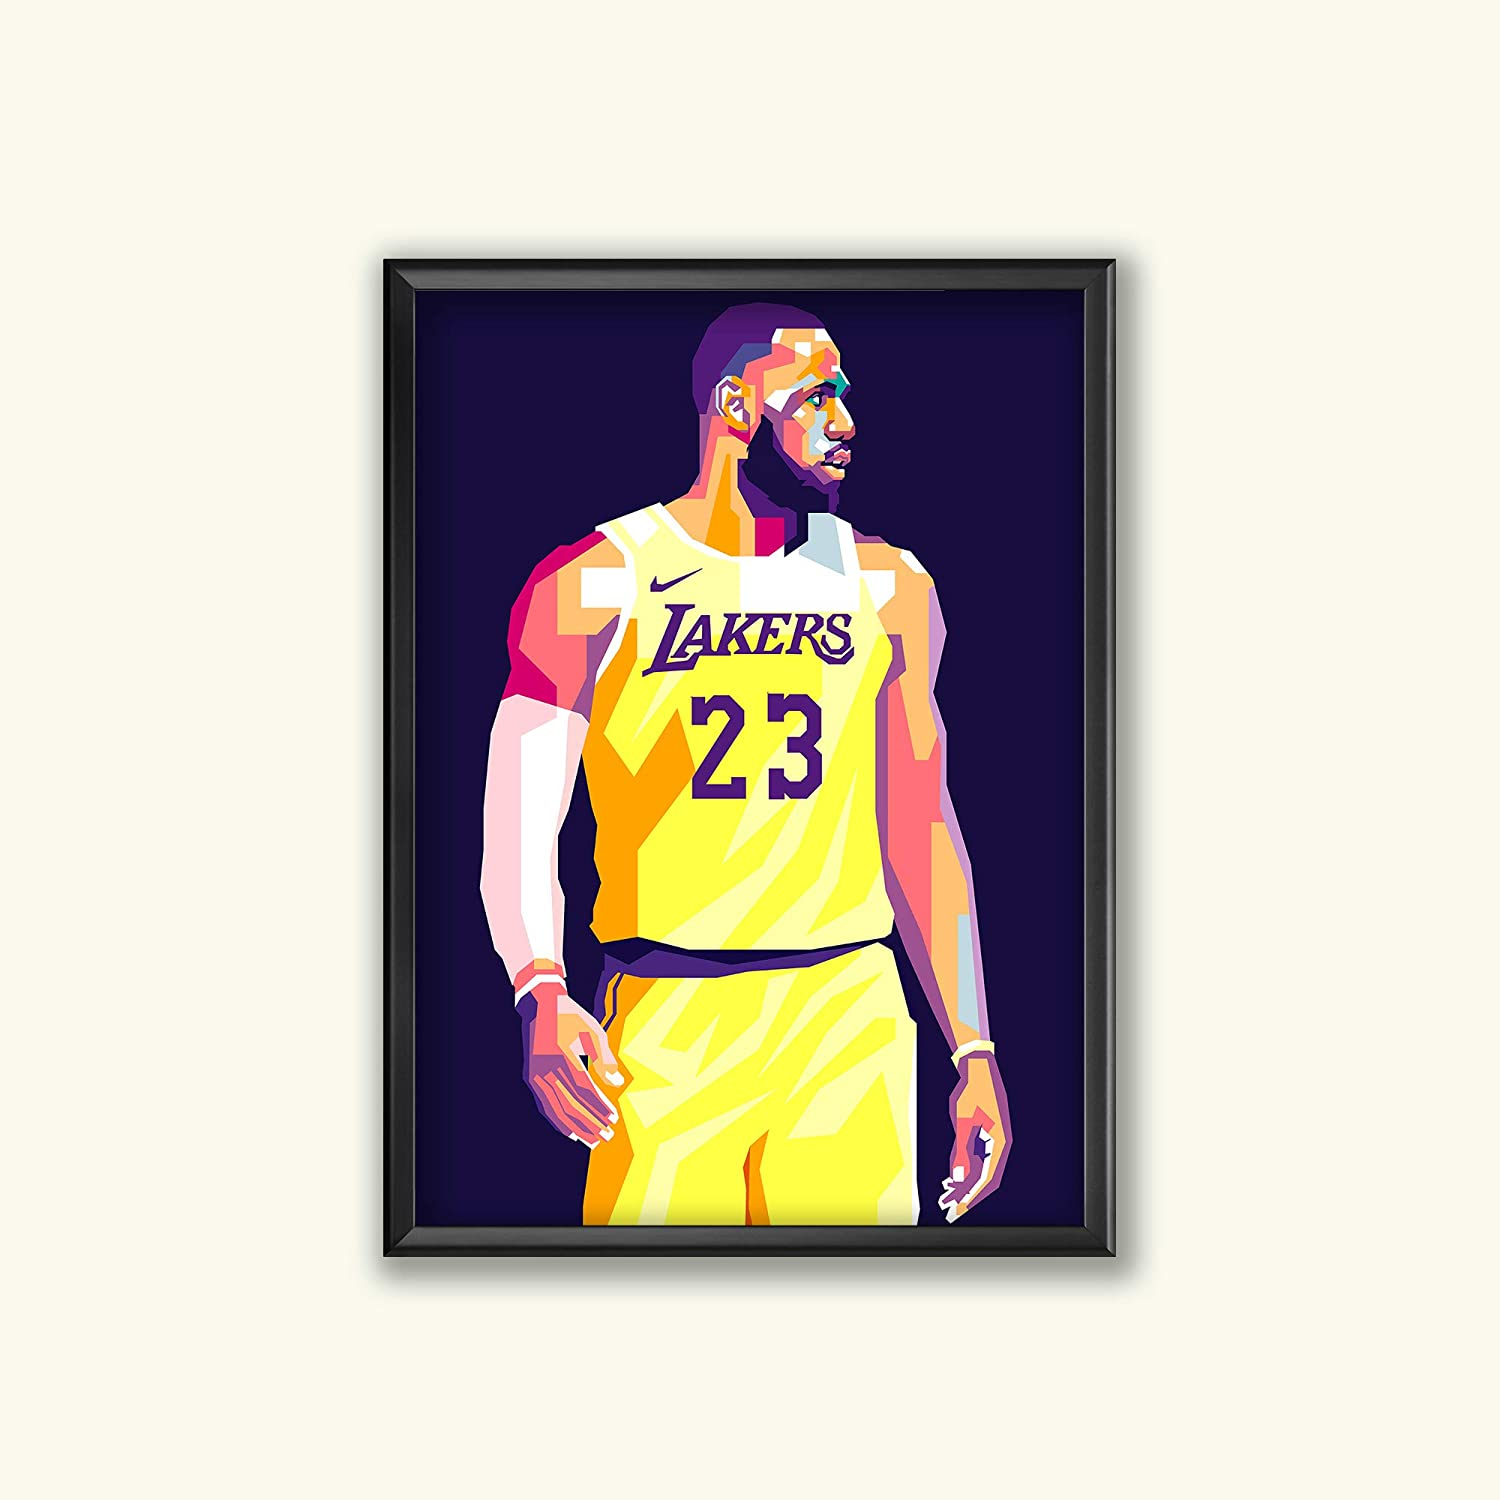 e1f94068161f9 Lebron James Limited Edition Lakers Poster Wall Art Wall Merchandise  (Additional Sizes) (8x10)